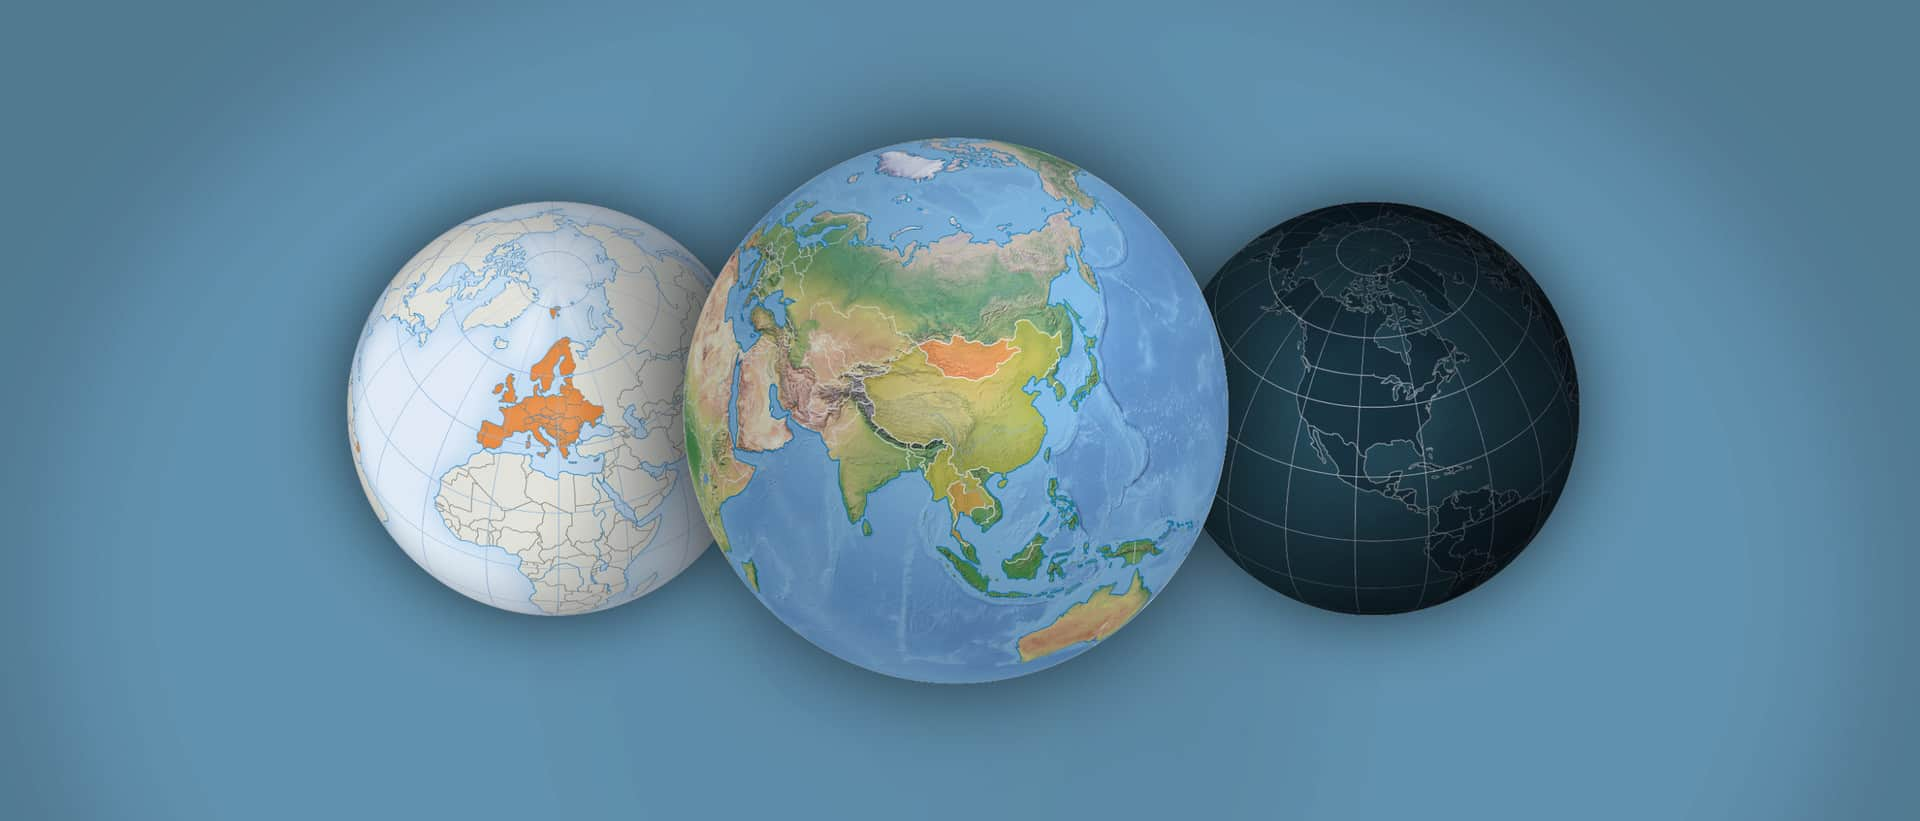 Powerglobe for Illustrator